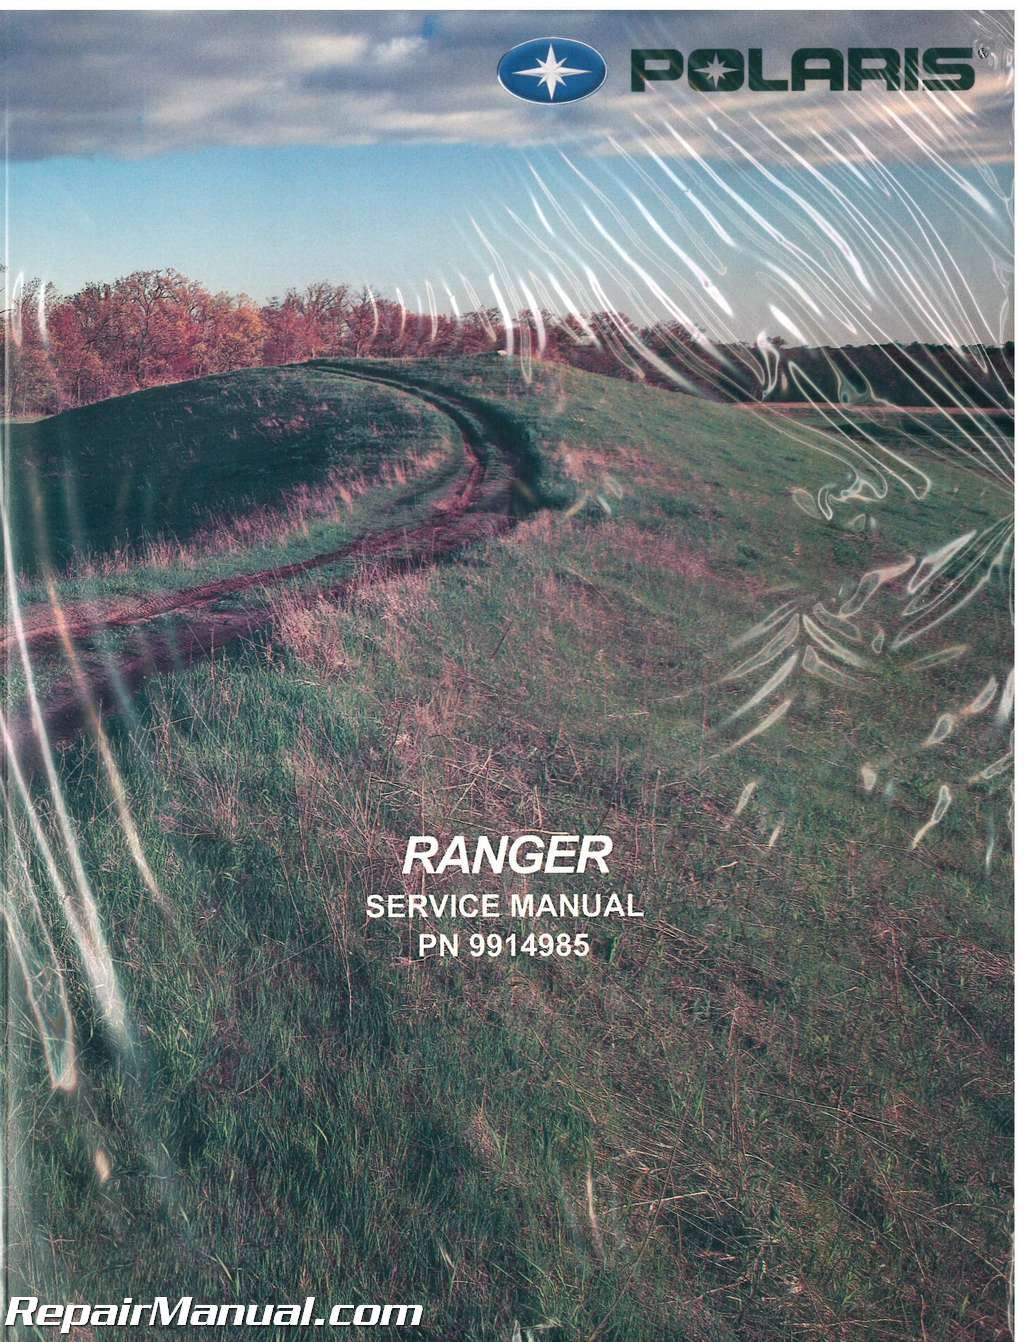 1999 Polaris Ranger 6x6 Side By Side Service Manual